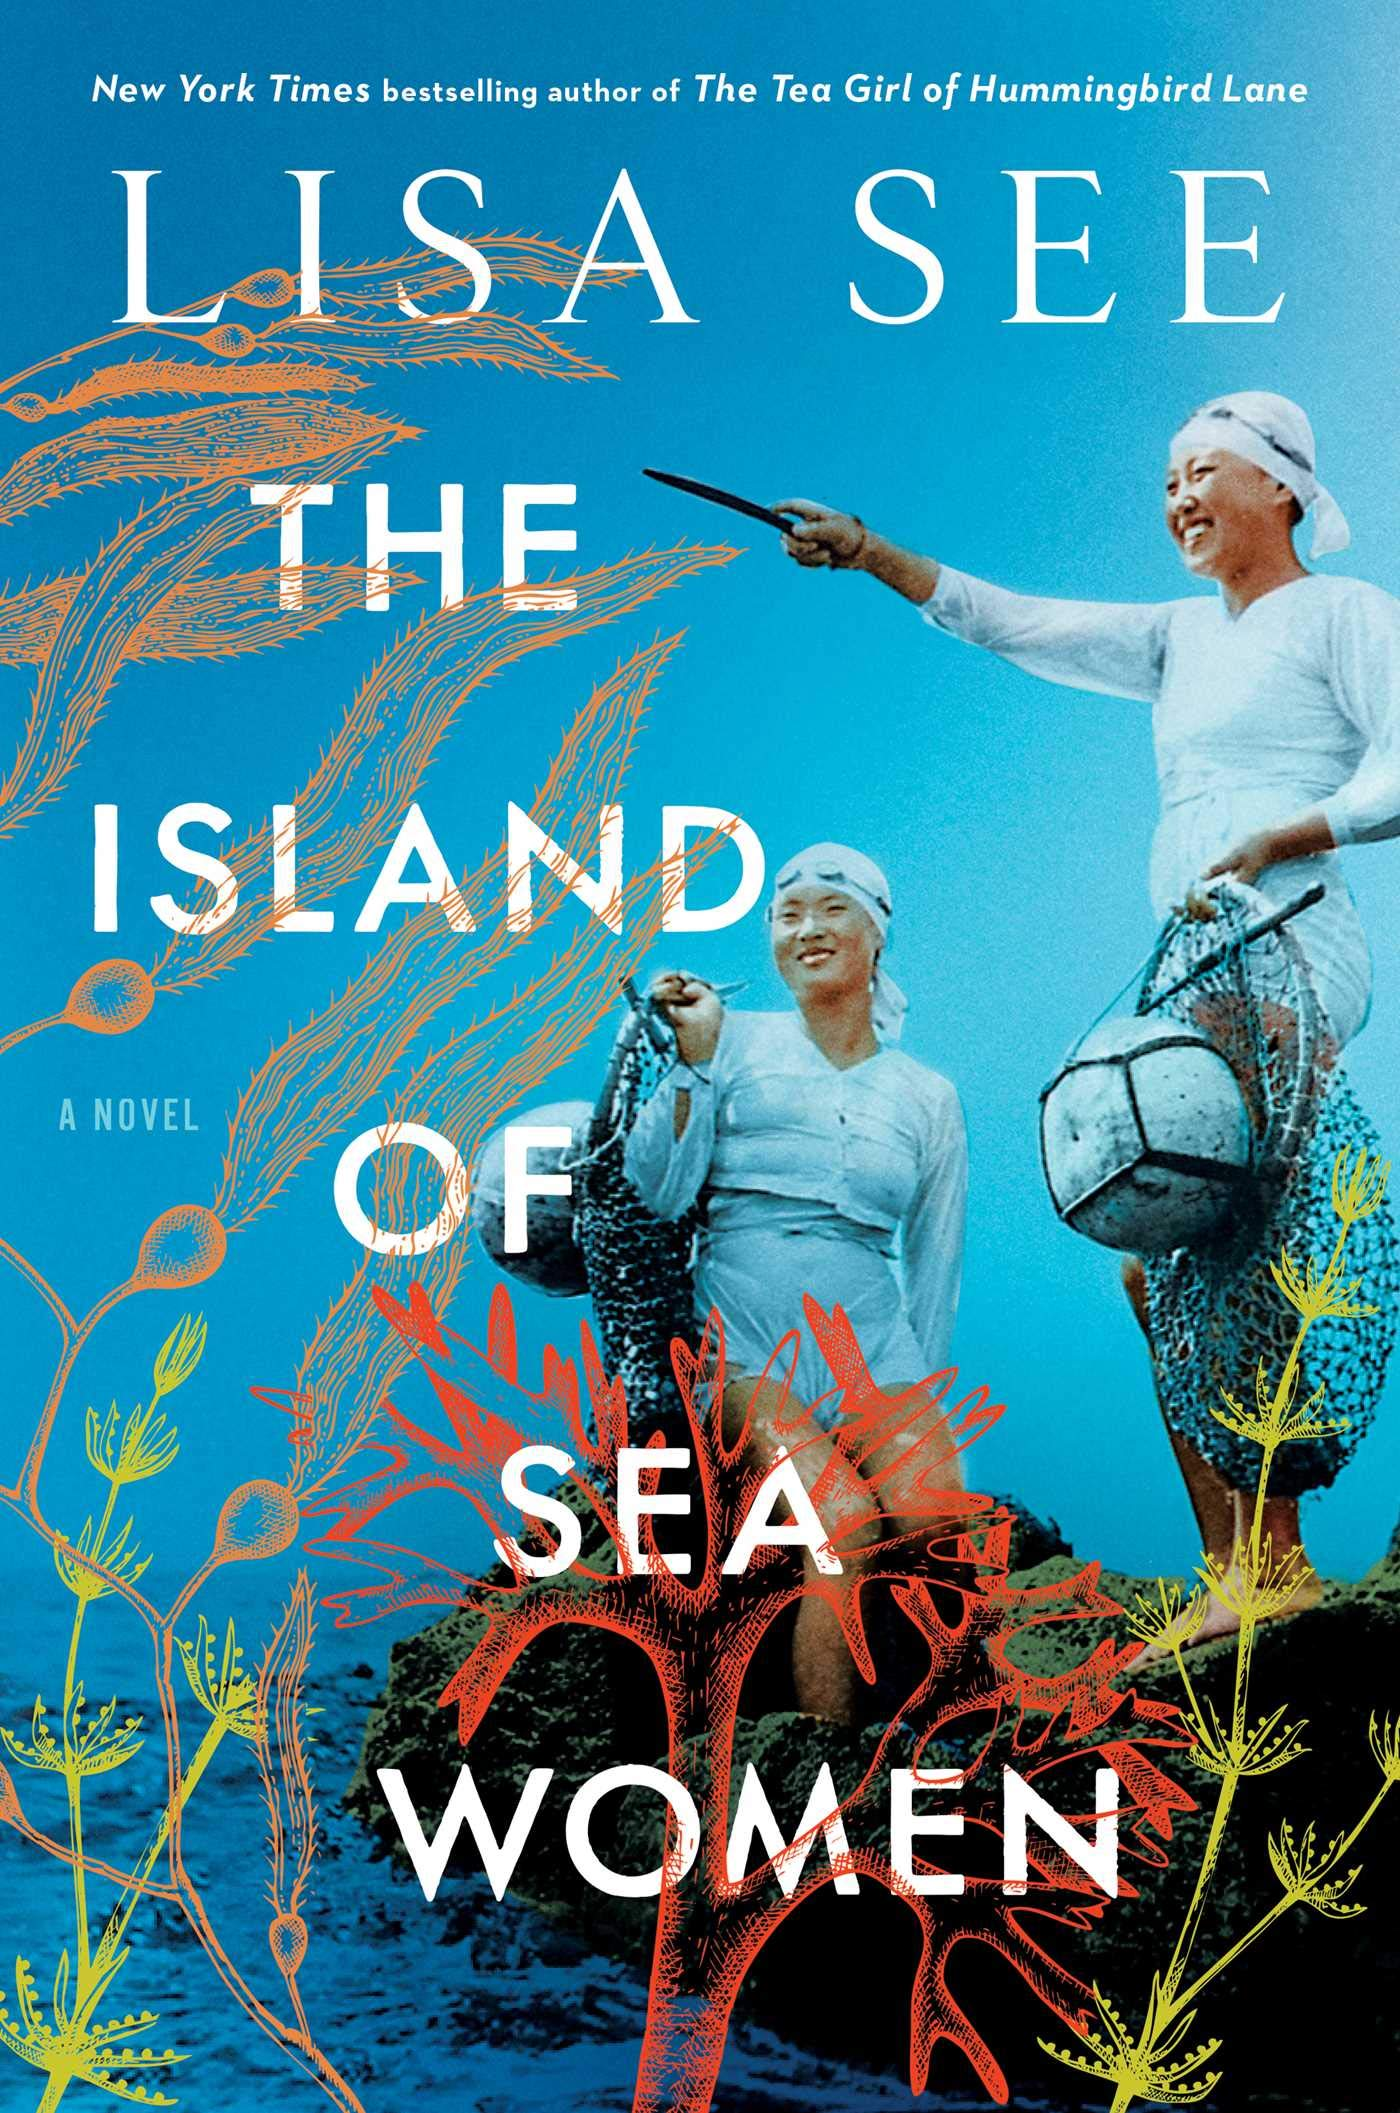 (F) The Island of Sea Women by Lisa See - Pages : 366The Island of Sea Women is based on the century-spanning history of haenyeo women on Jeju Island– a collection of female divers known for their independent spirit who free dive off the coast of Jeju Island near South Korea to harvest various sea creatures. It follows Young-Sook and Mi-ja, girls from strikingly different backgrounds who both grew up on the island of Jeju. They work as haenyeo's in the village, and their story is traced through Japanese colonialism of the 1930s and 40s, World War II, the Korean War, and to the present. I had never heard of the haenyeo women before I read this, and it was definitely one of the highlights of the book. The historical and cultural aspects of the book are beautifully rendered, and I'd recommend this to anyone who likes reading historical fiction.